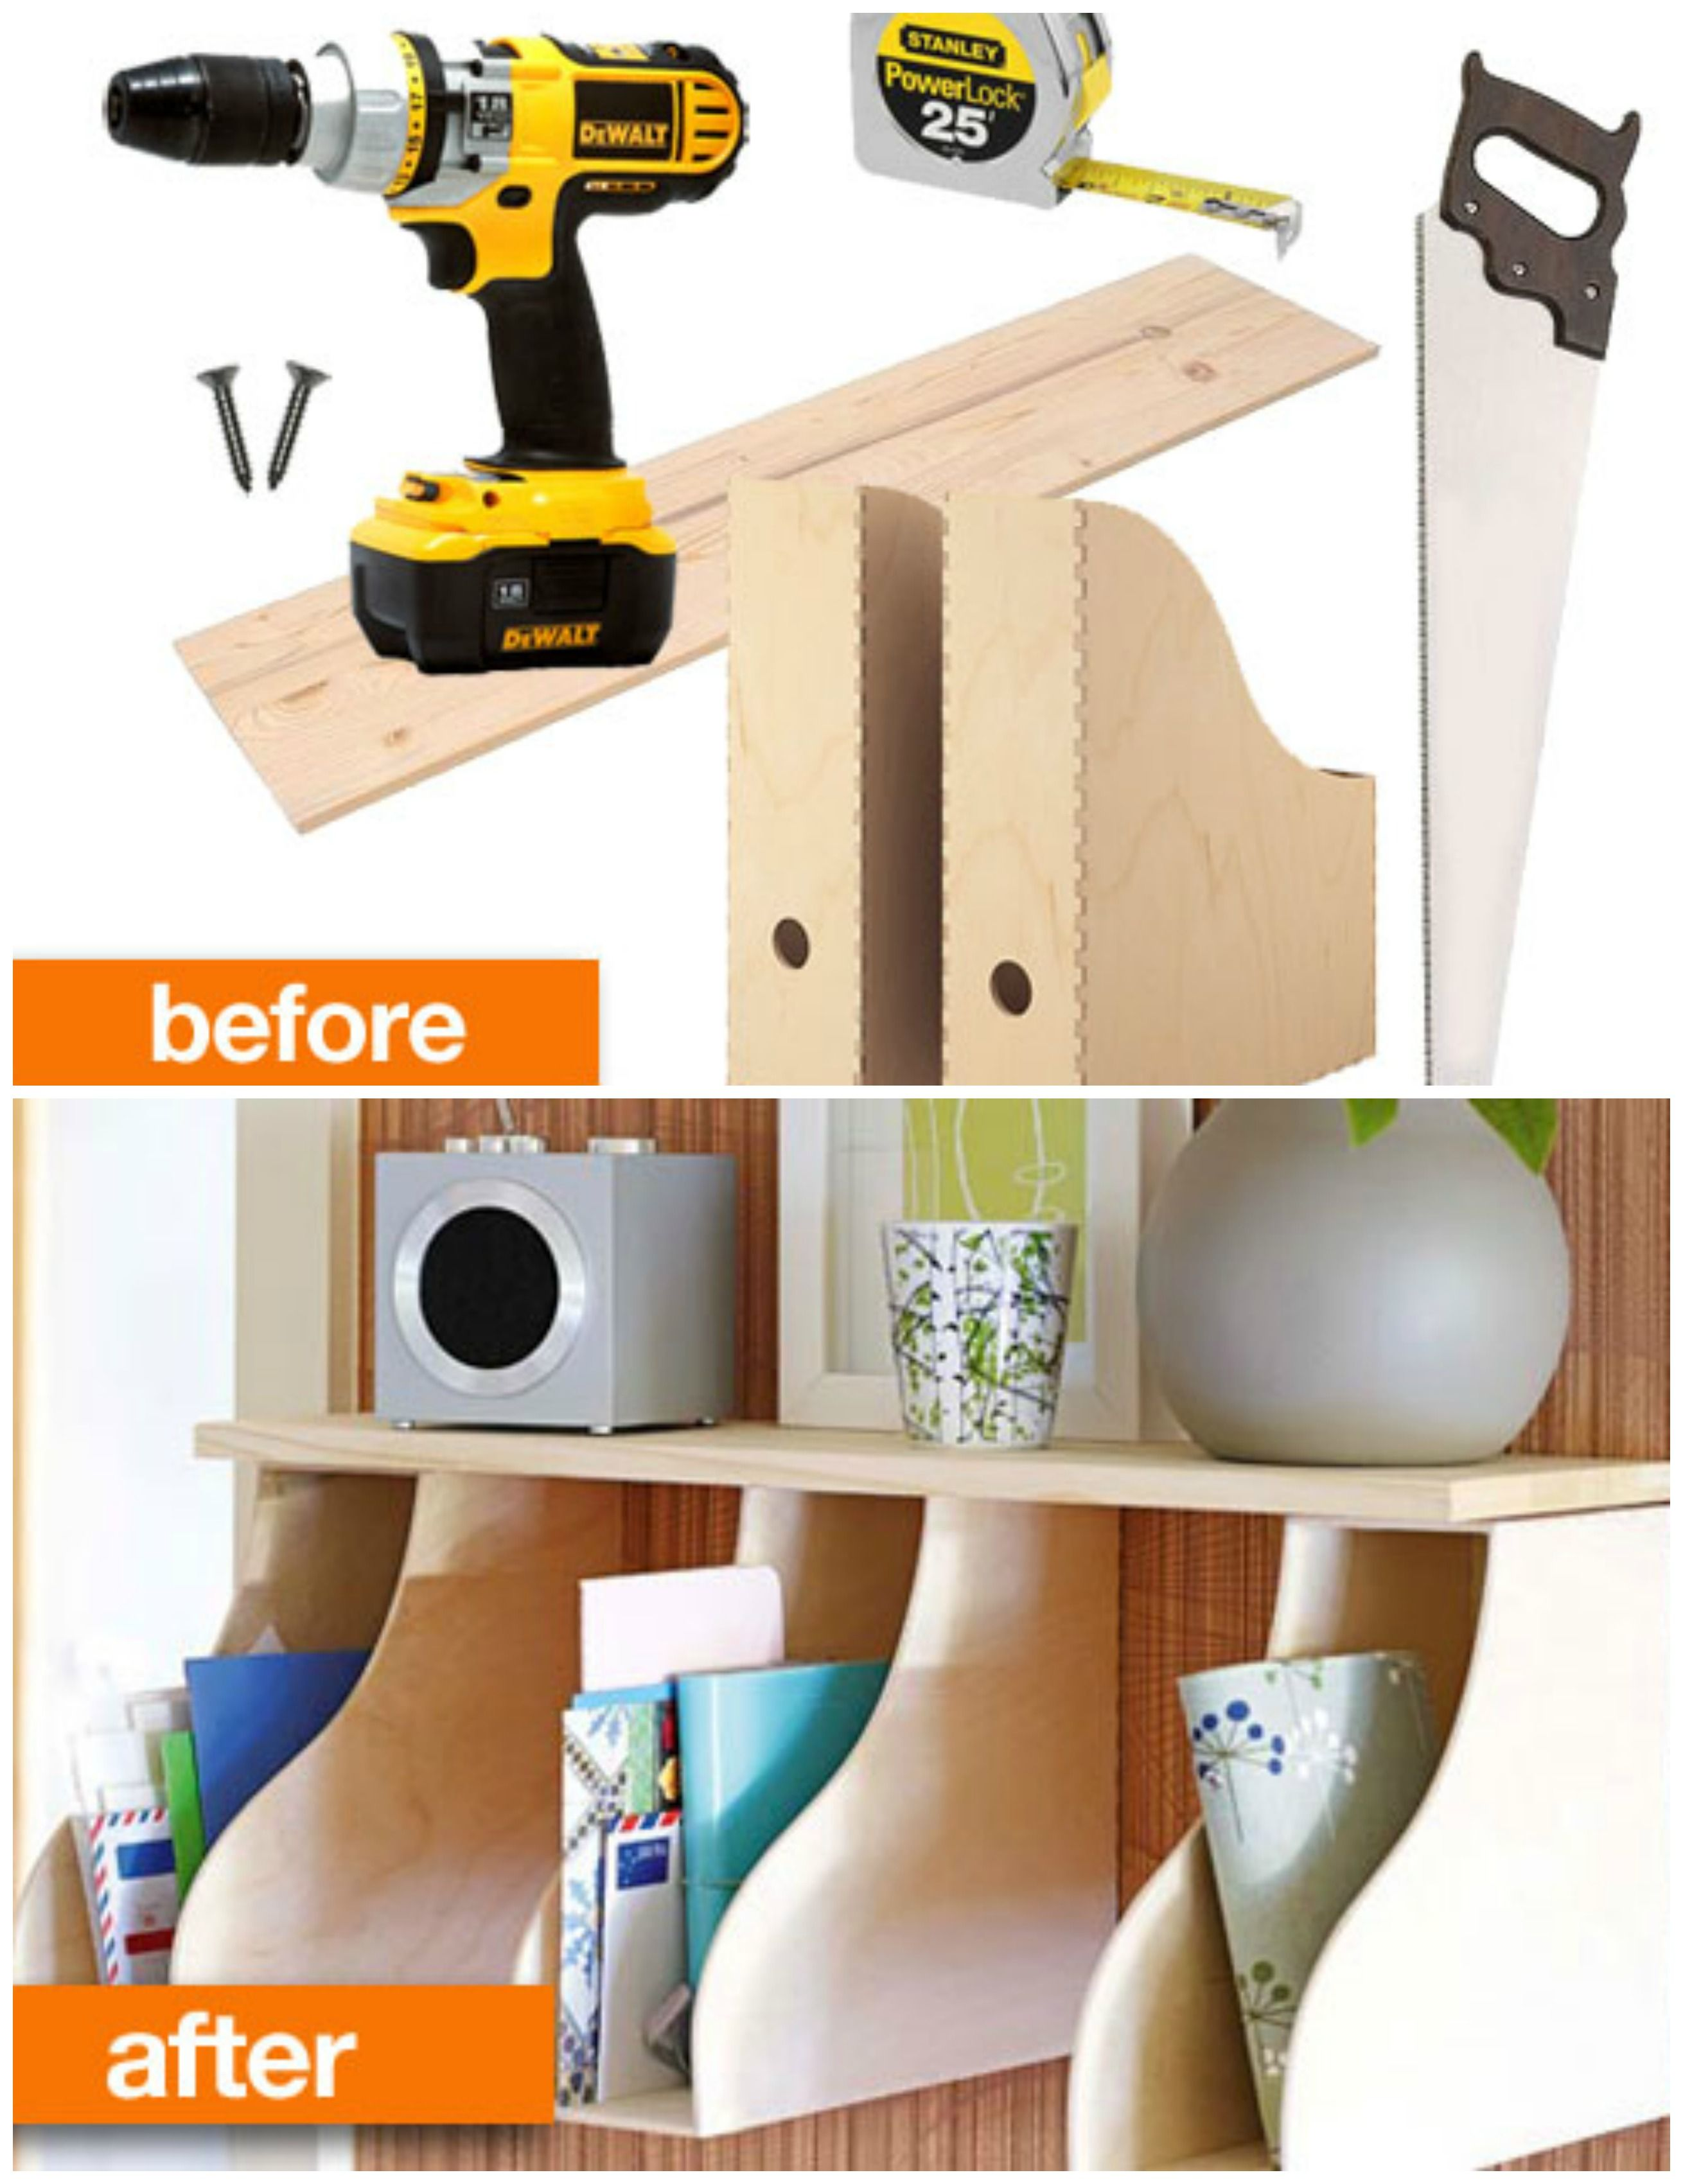 Kinderzimmer Aufbewahrung Ideen Before And After The Diy Ikea Office Organizer In 2019